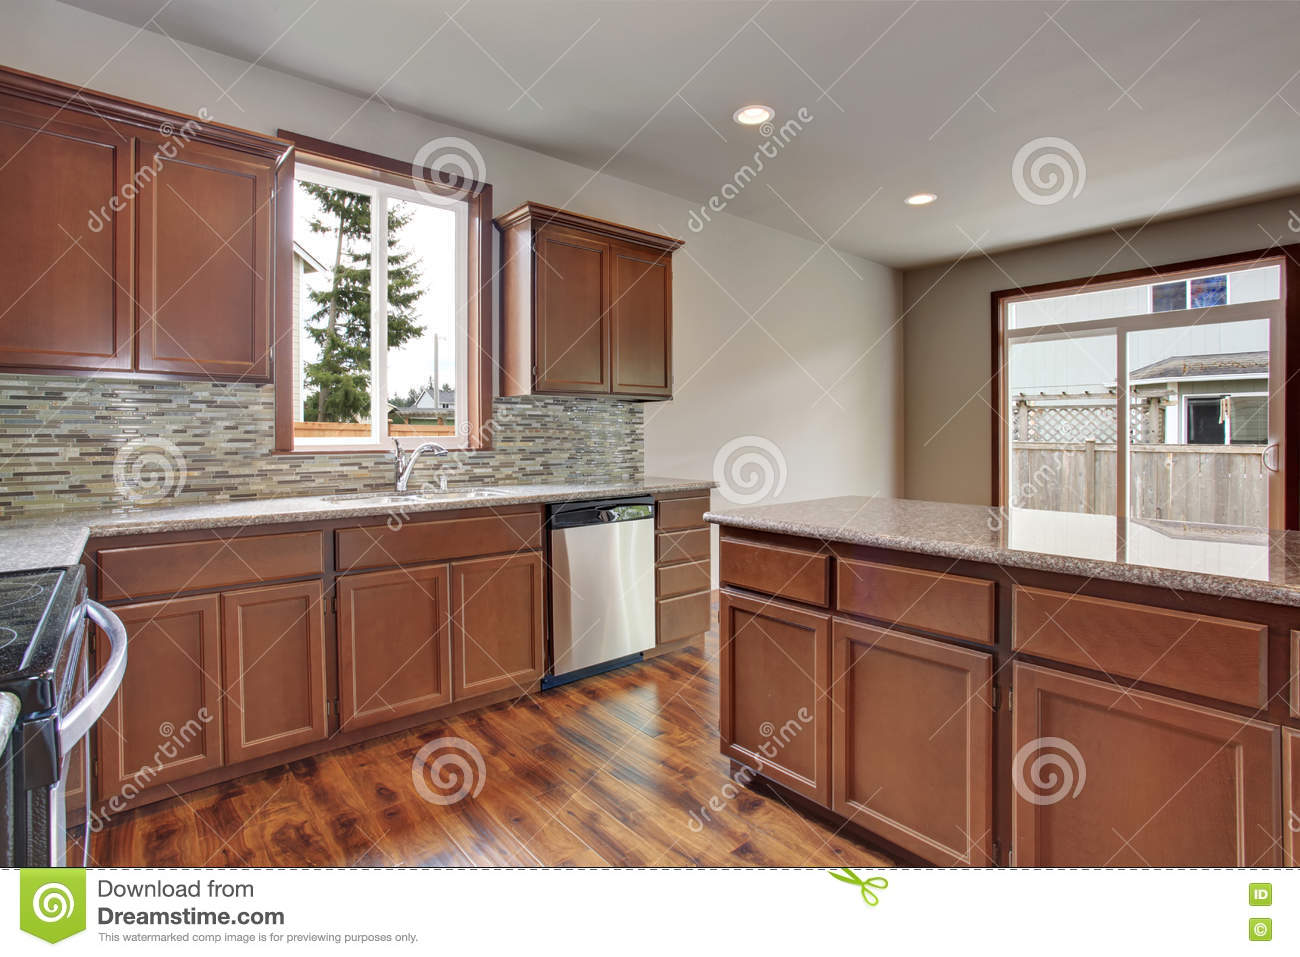 Modern Kitchen Room Interior In An Empty House Furnished With Dark Brown Cabinets Stock Image Image Of Kitchen Apartment 74848273